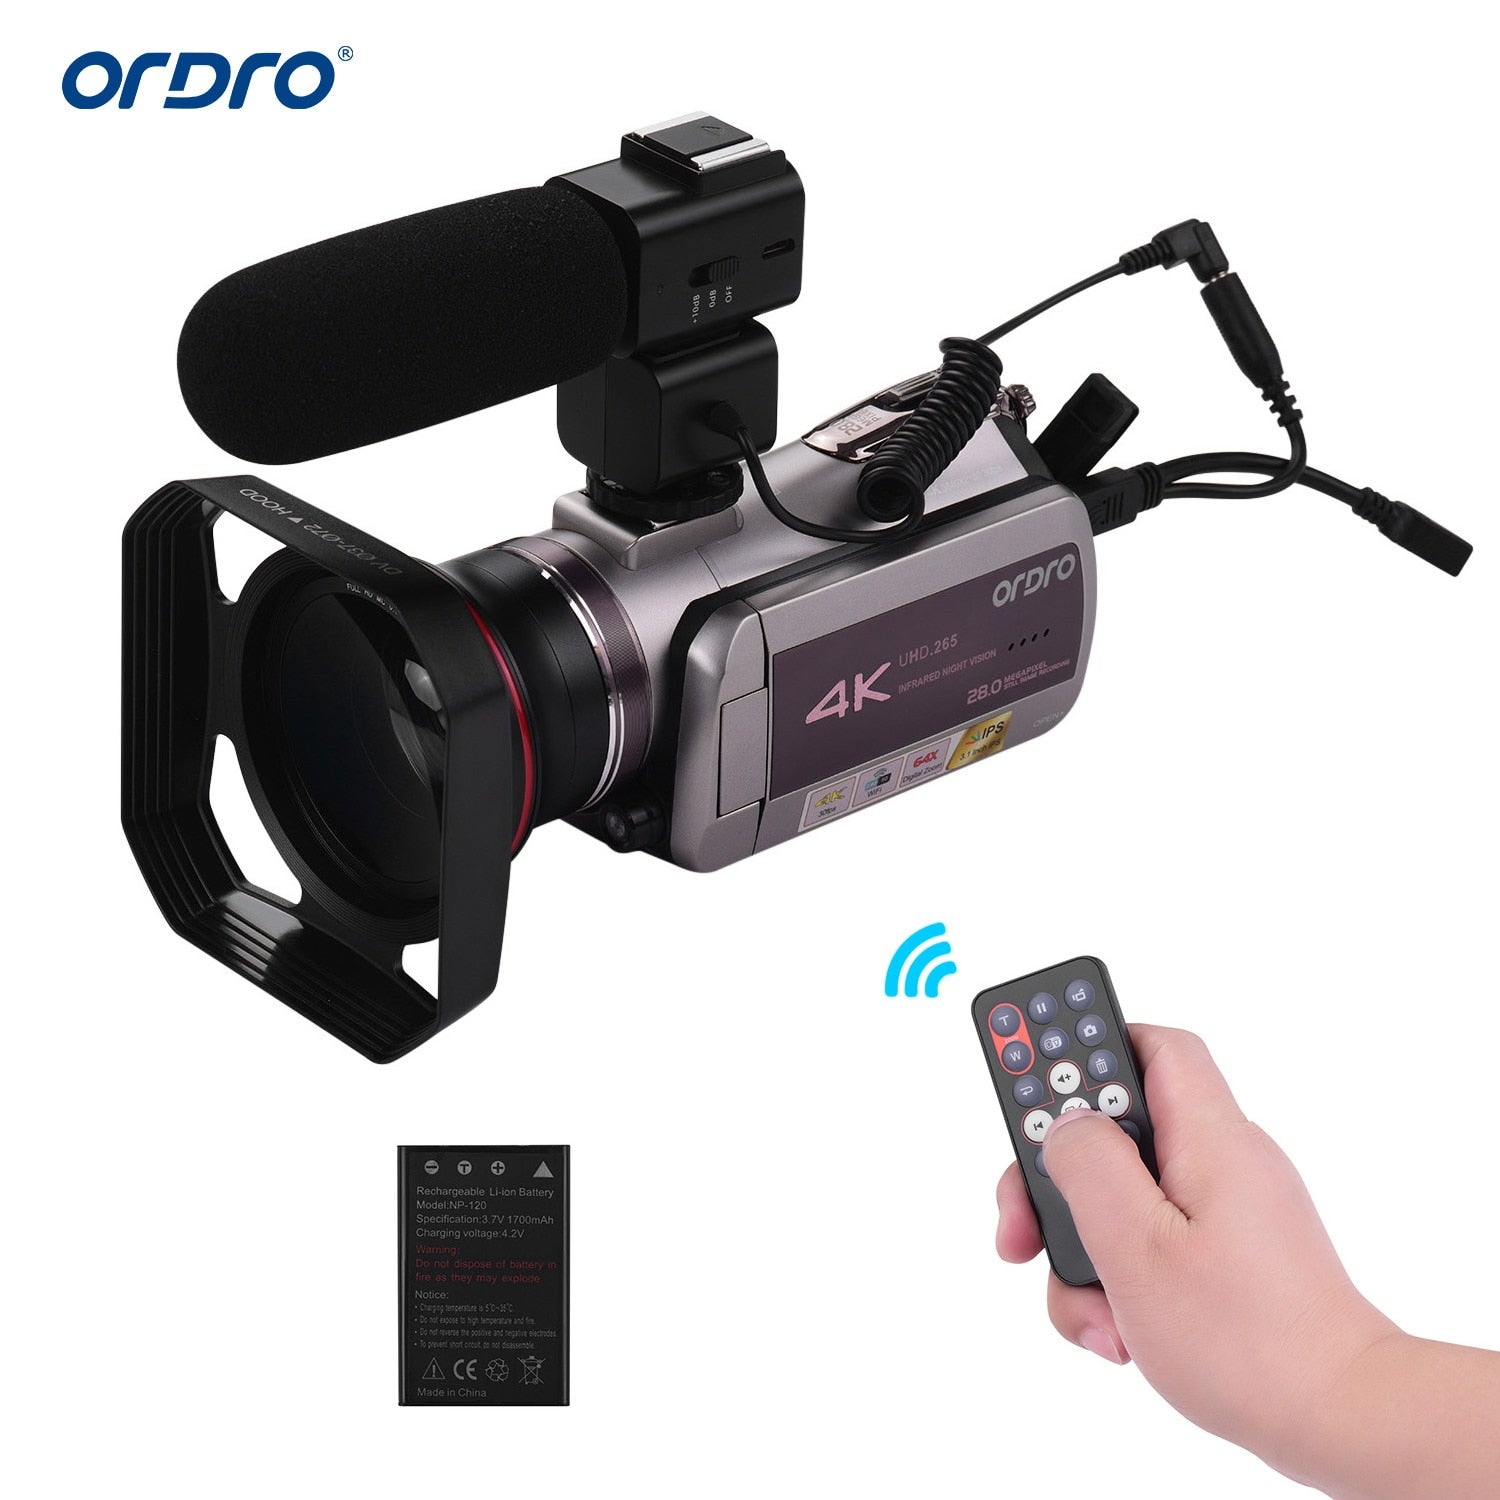 ORDRO Photography Real 4K UHD 30FPS WiFi Digital Video Camera